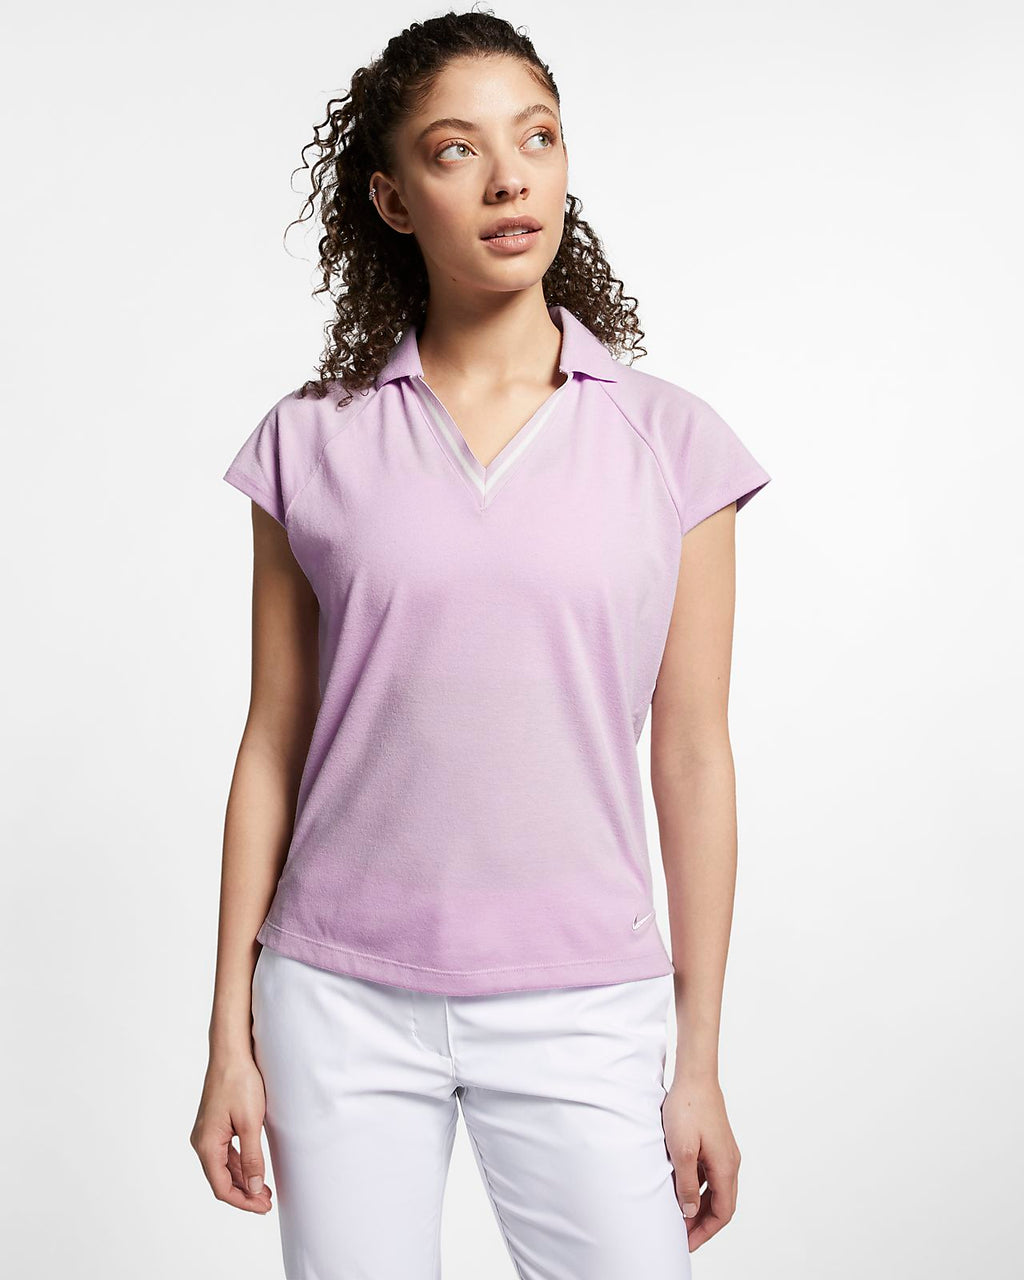 Women's Nike Golf Polo Shirt.     AV3654-543